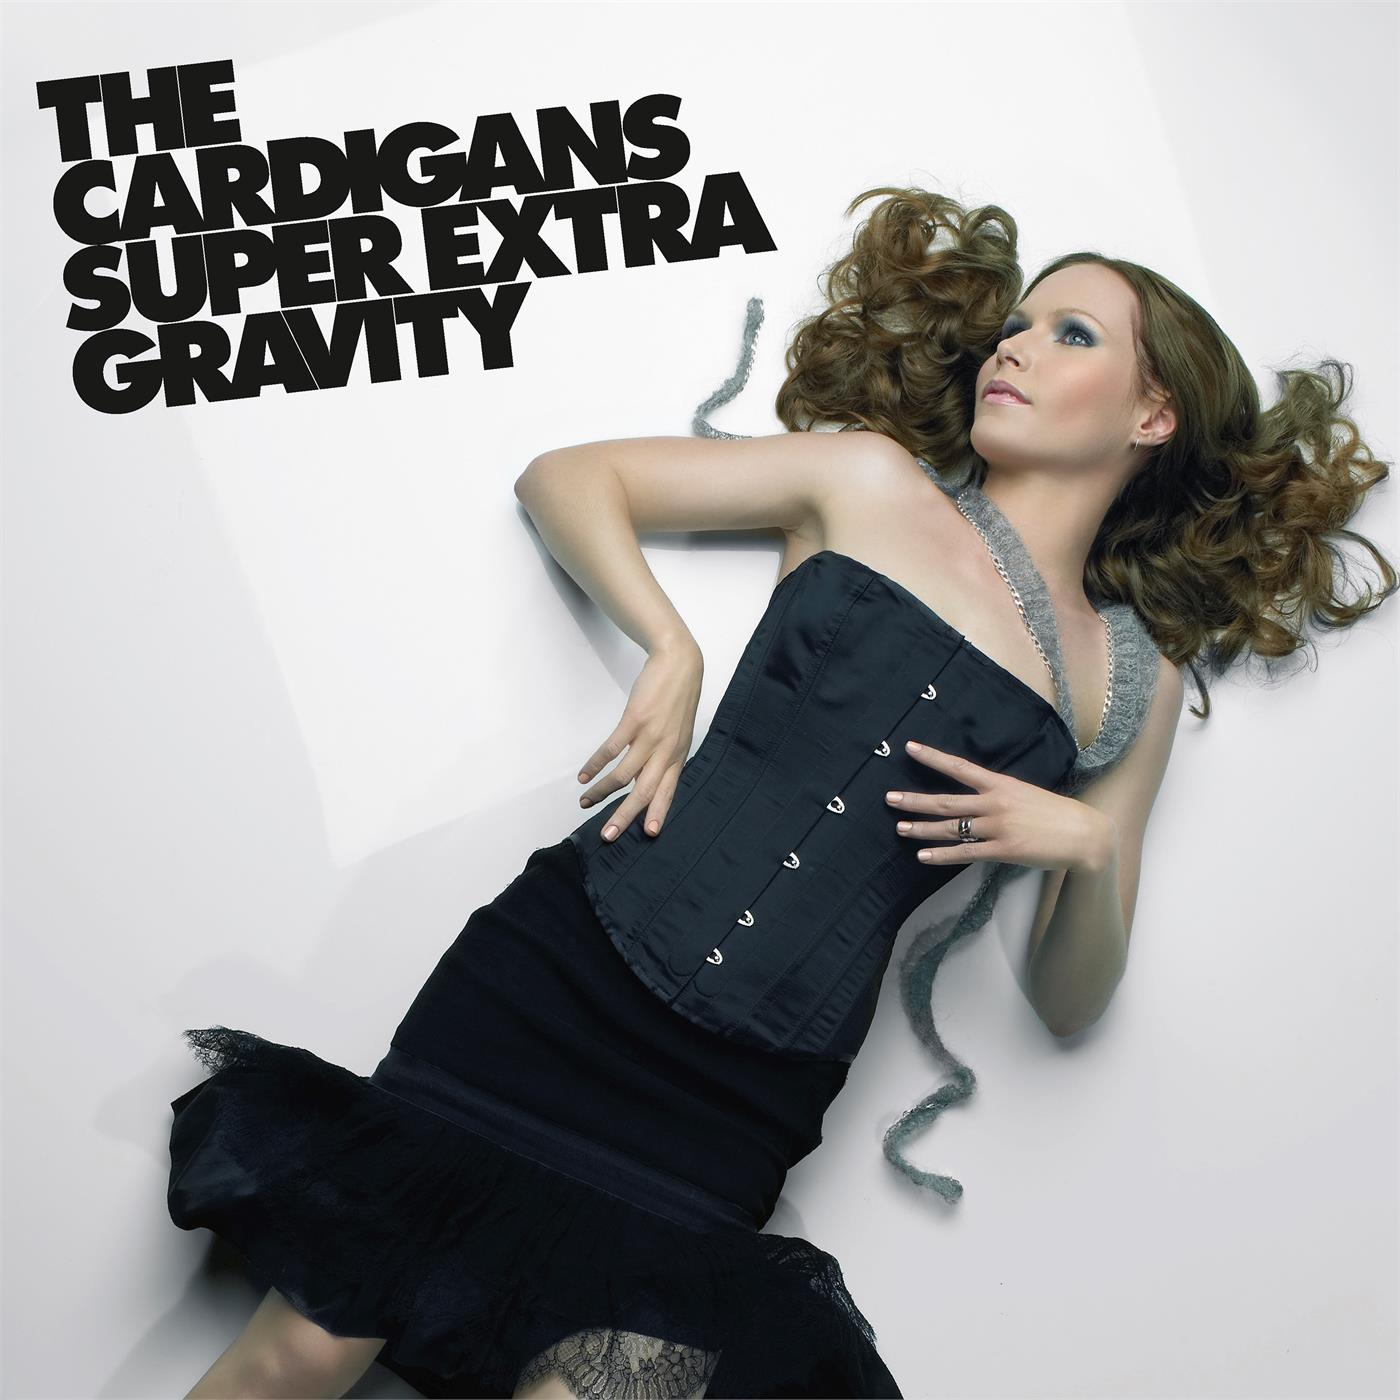 0602557221725 Universal  Cardigans Super Extra Gravity (LP)